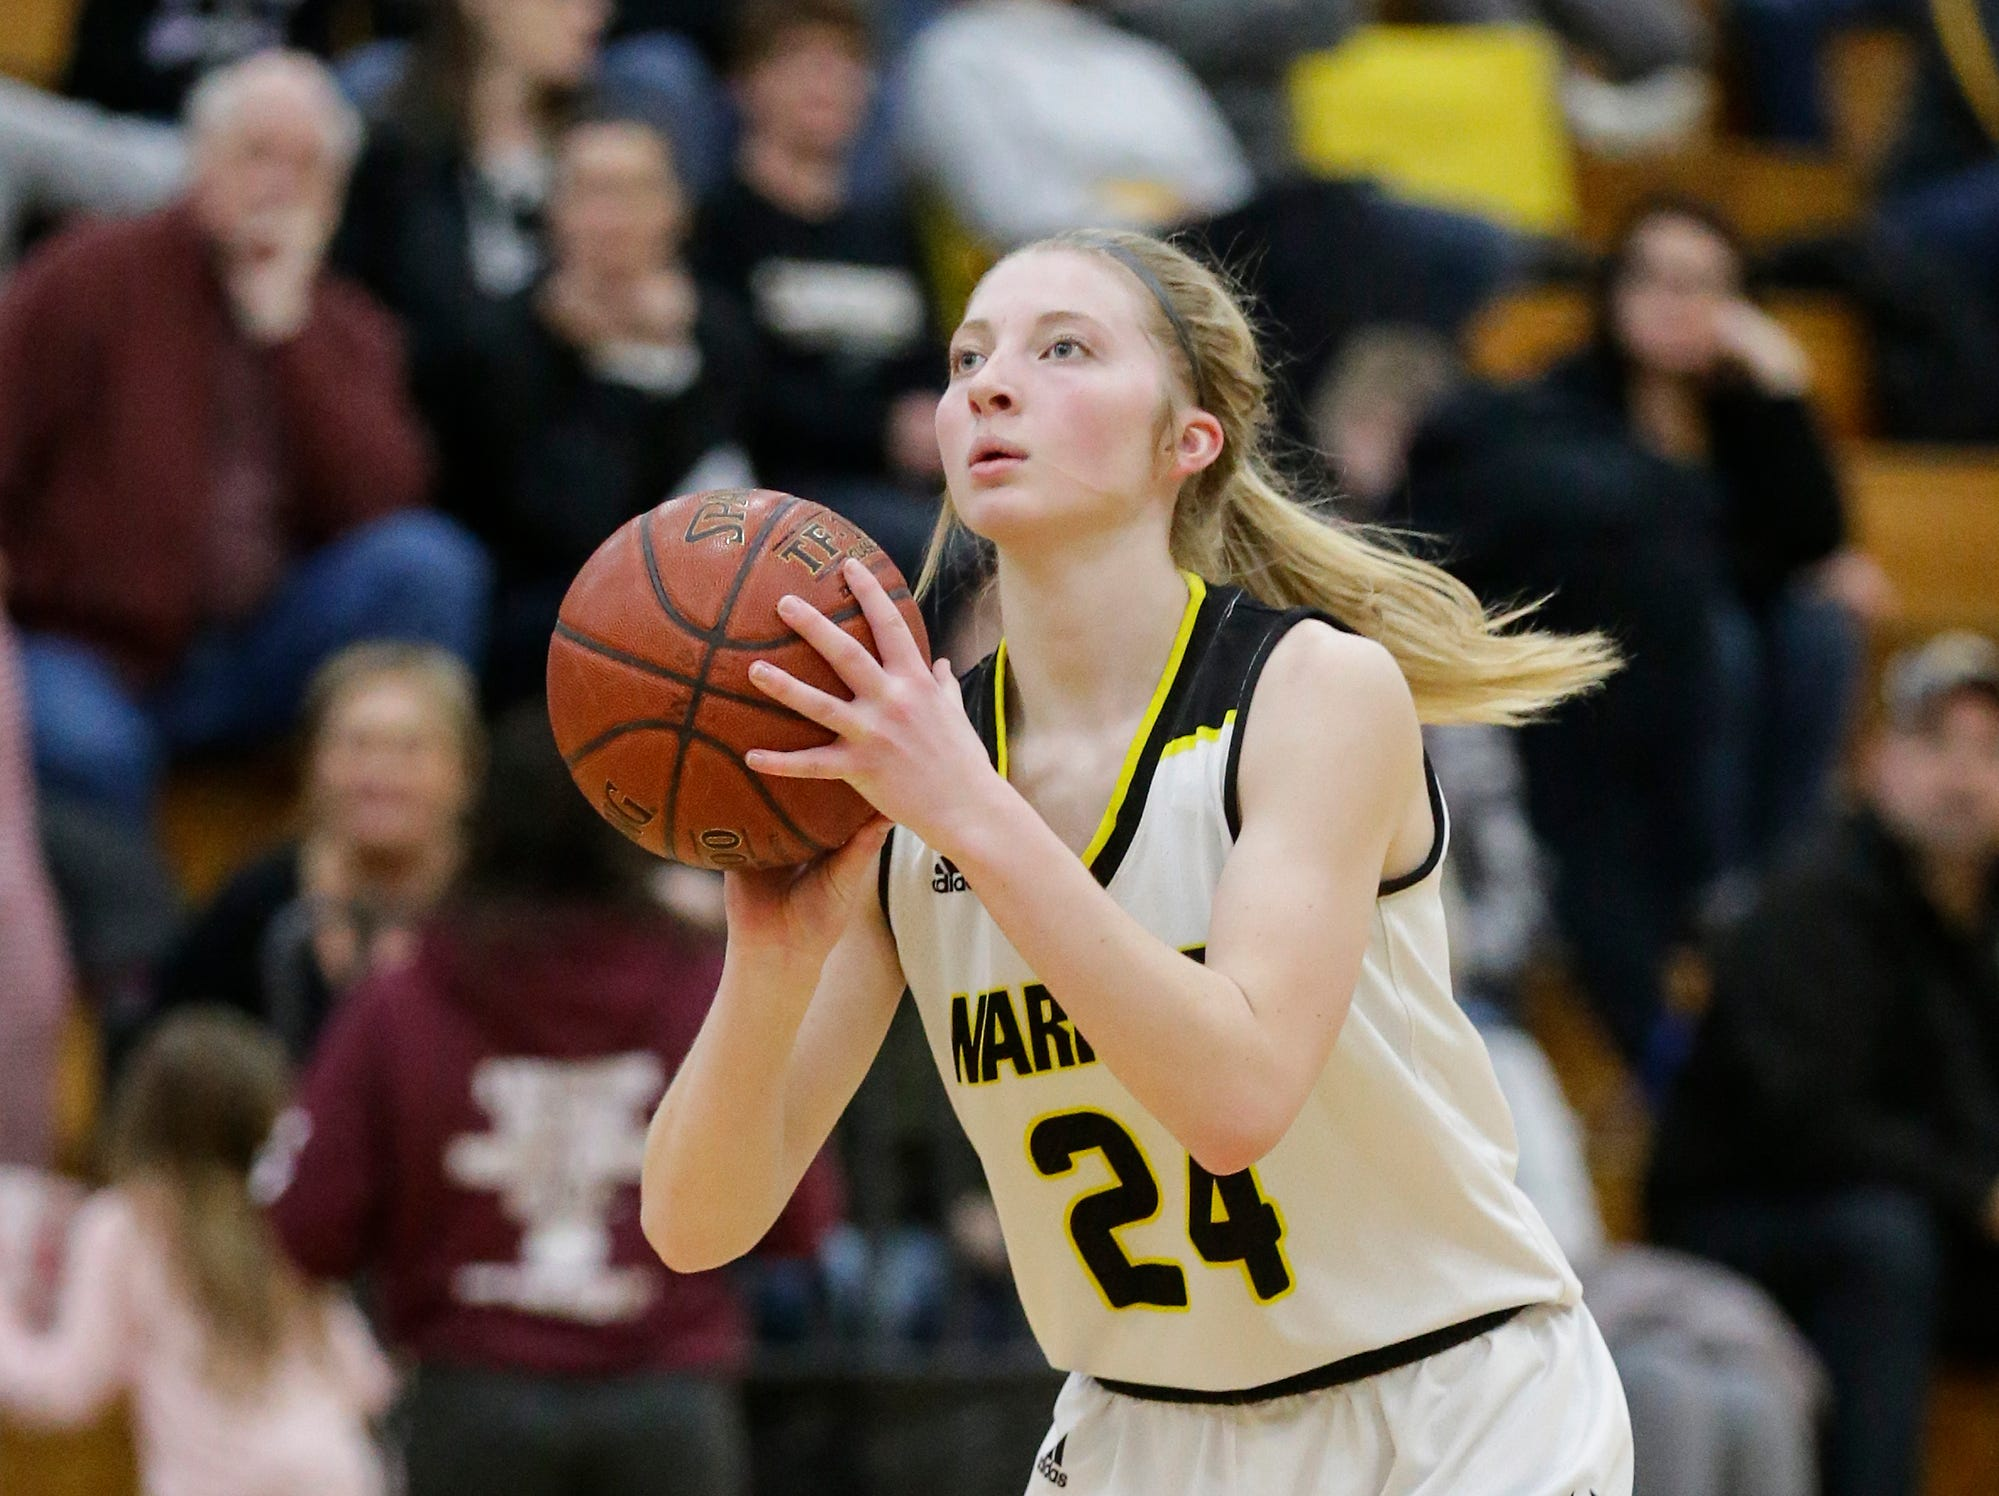 Waupun High School girls basketball's Peyton McGinnis (24) attempts a three pointer against Mayville High School Saturday, February 23, 2019 during their WIAA Division 4 sectional quarterfinal game in Waupun. Waupun won the game 62-45. Doug Raflik/USA TODAY NETWORK-Wisconsin